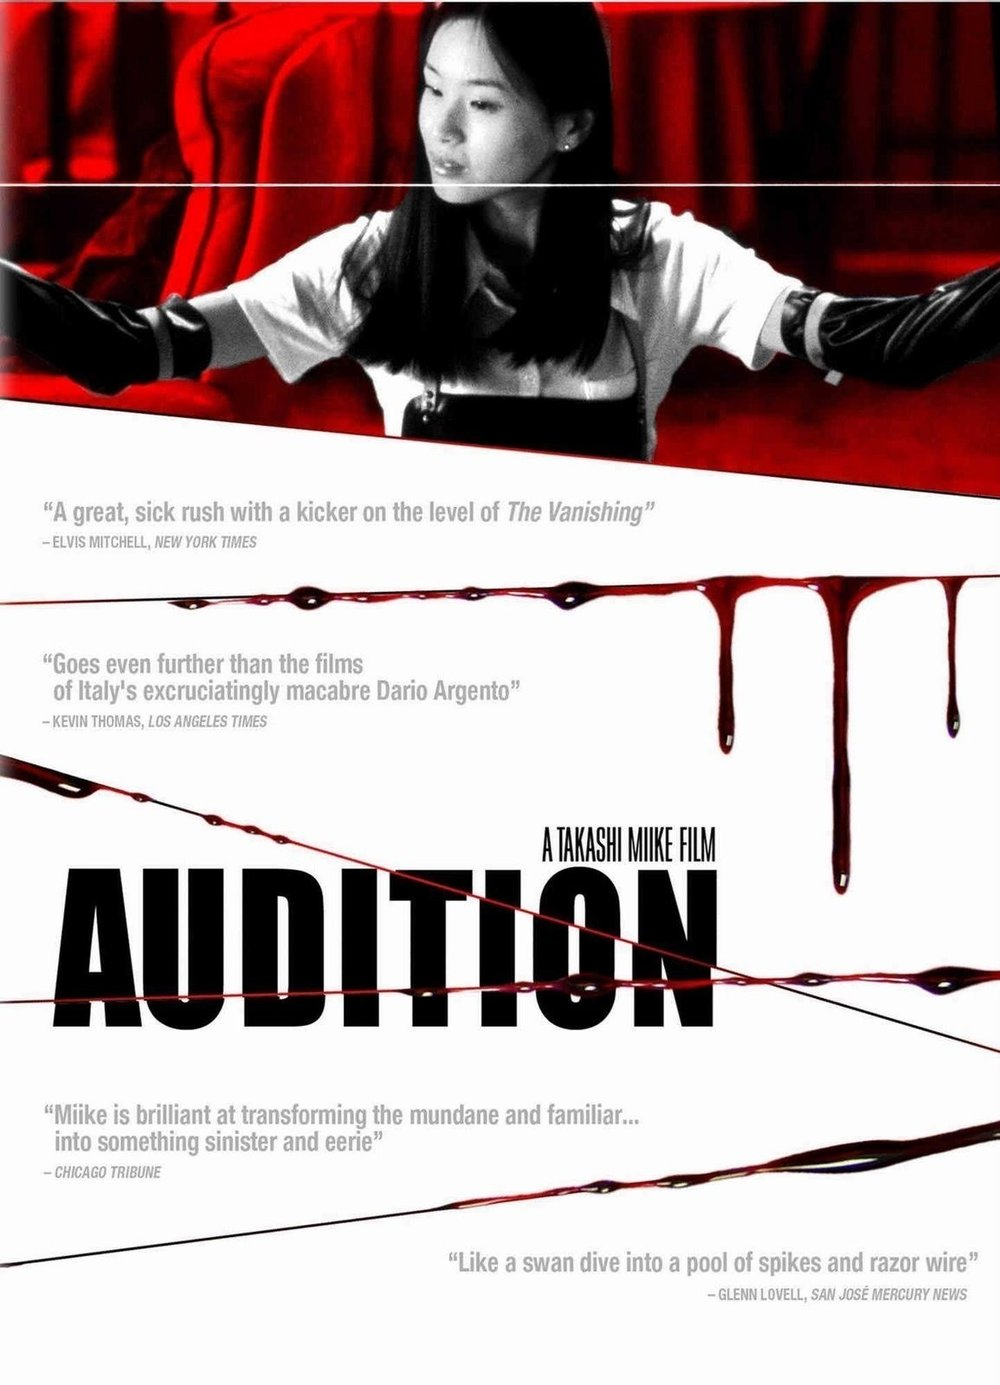 audition-dishon.16013.jpg